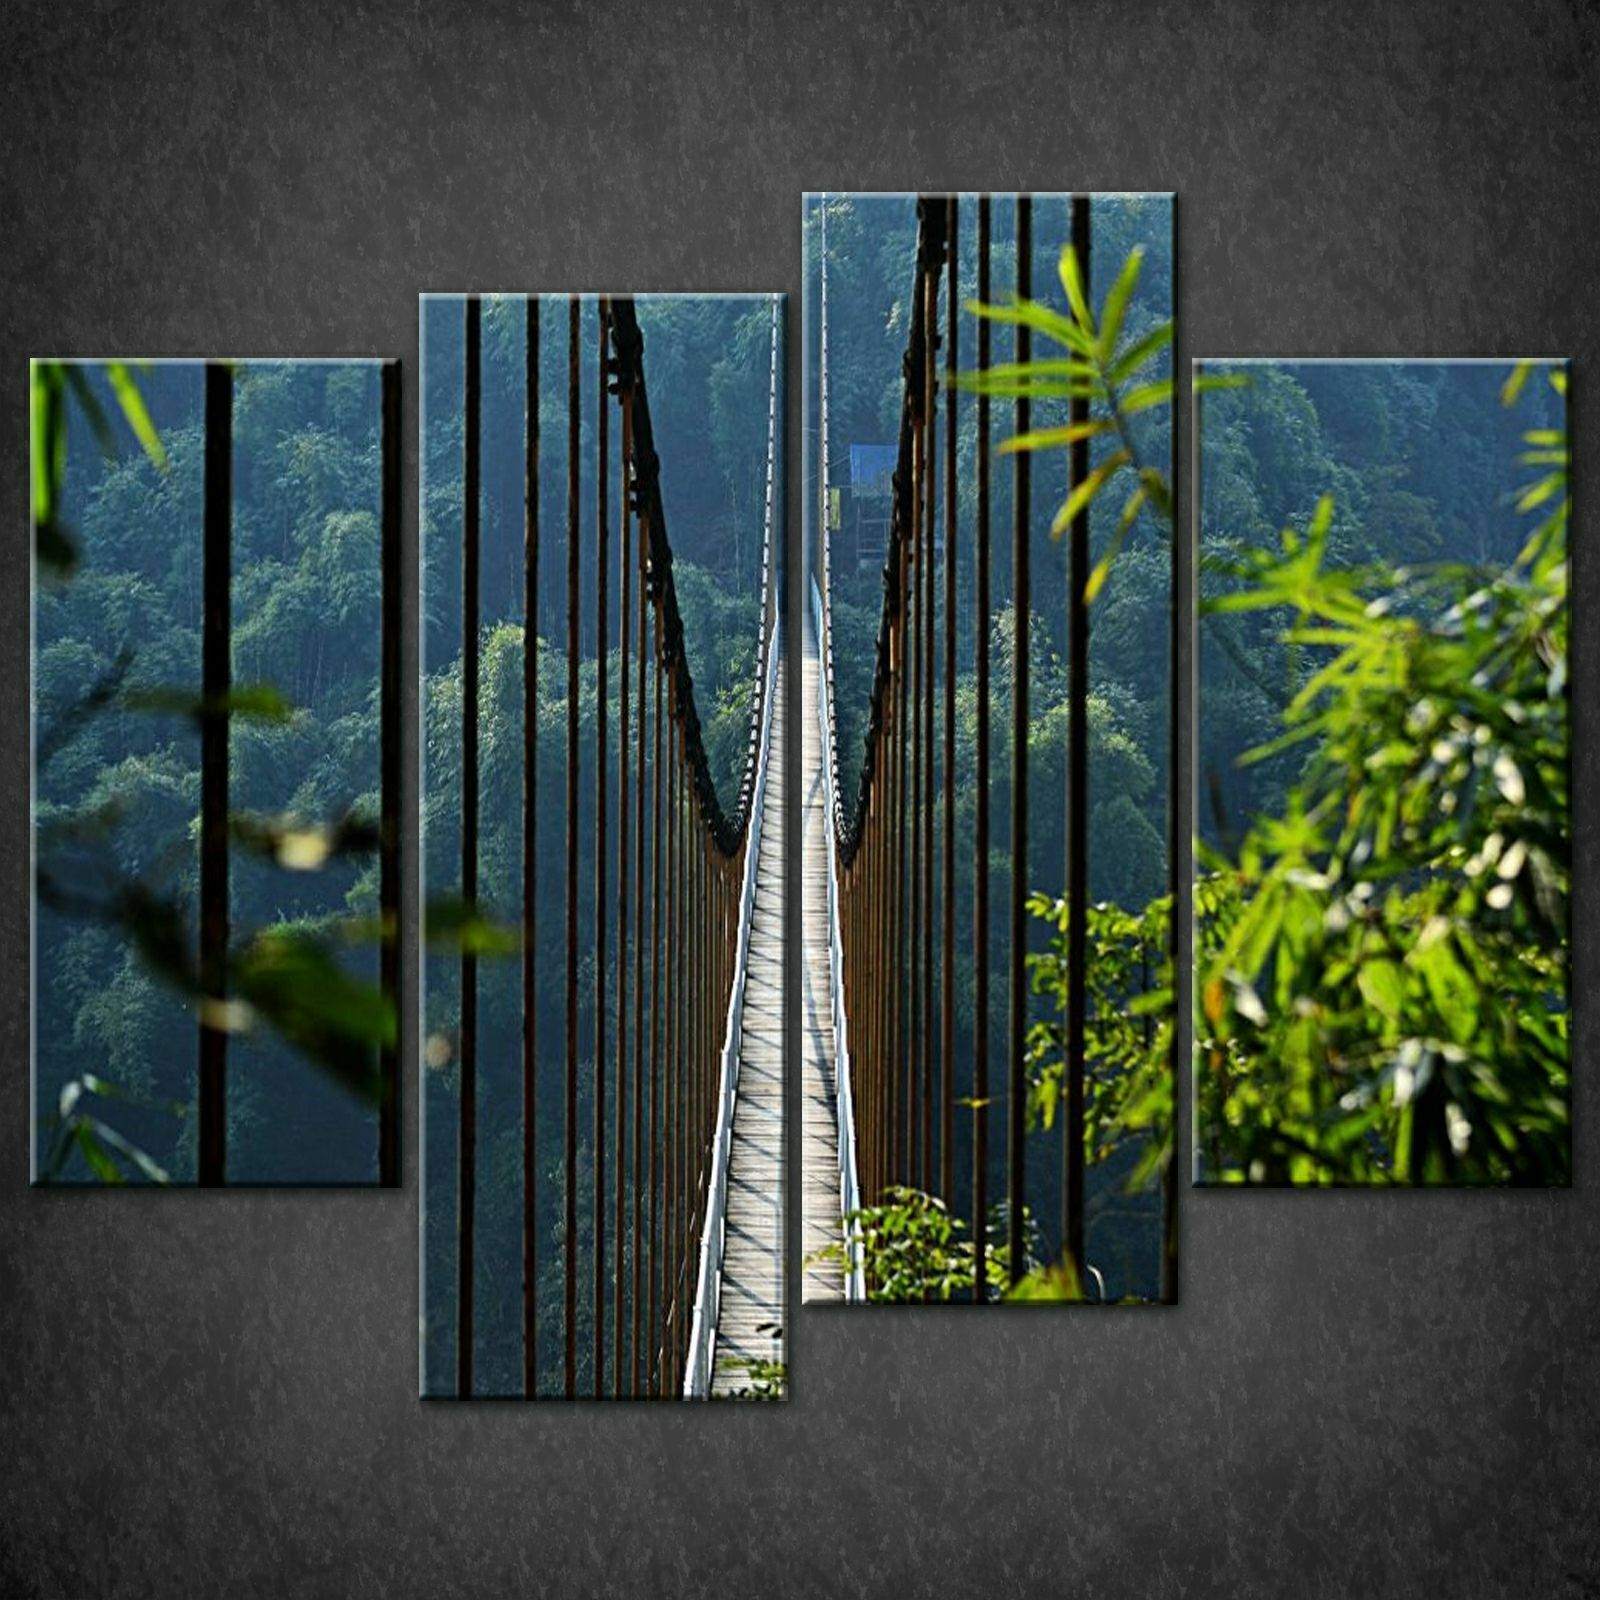 ROPE BRIDGE IN FOREST CANVAS PRINT PICTURE WALL ART FREE FAST DELIVERY